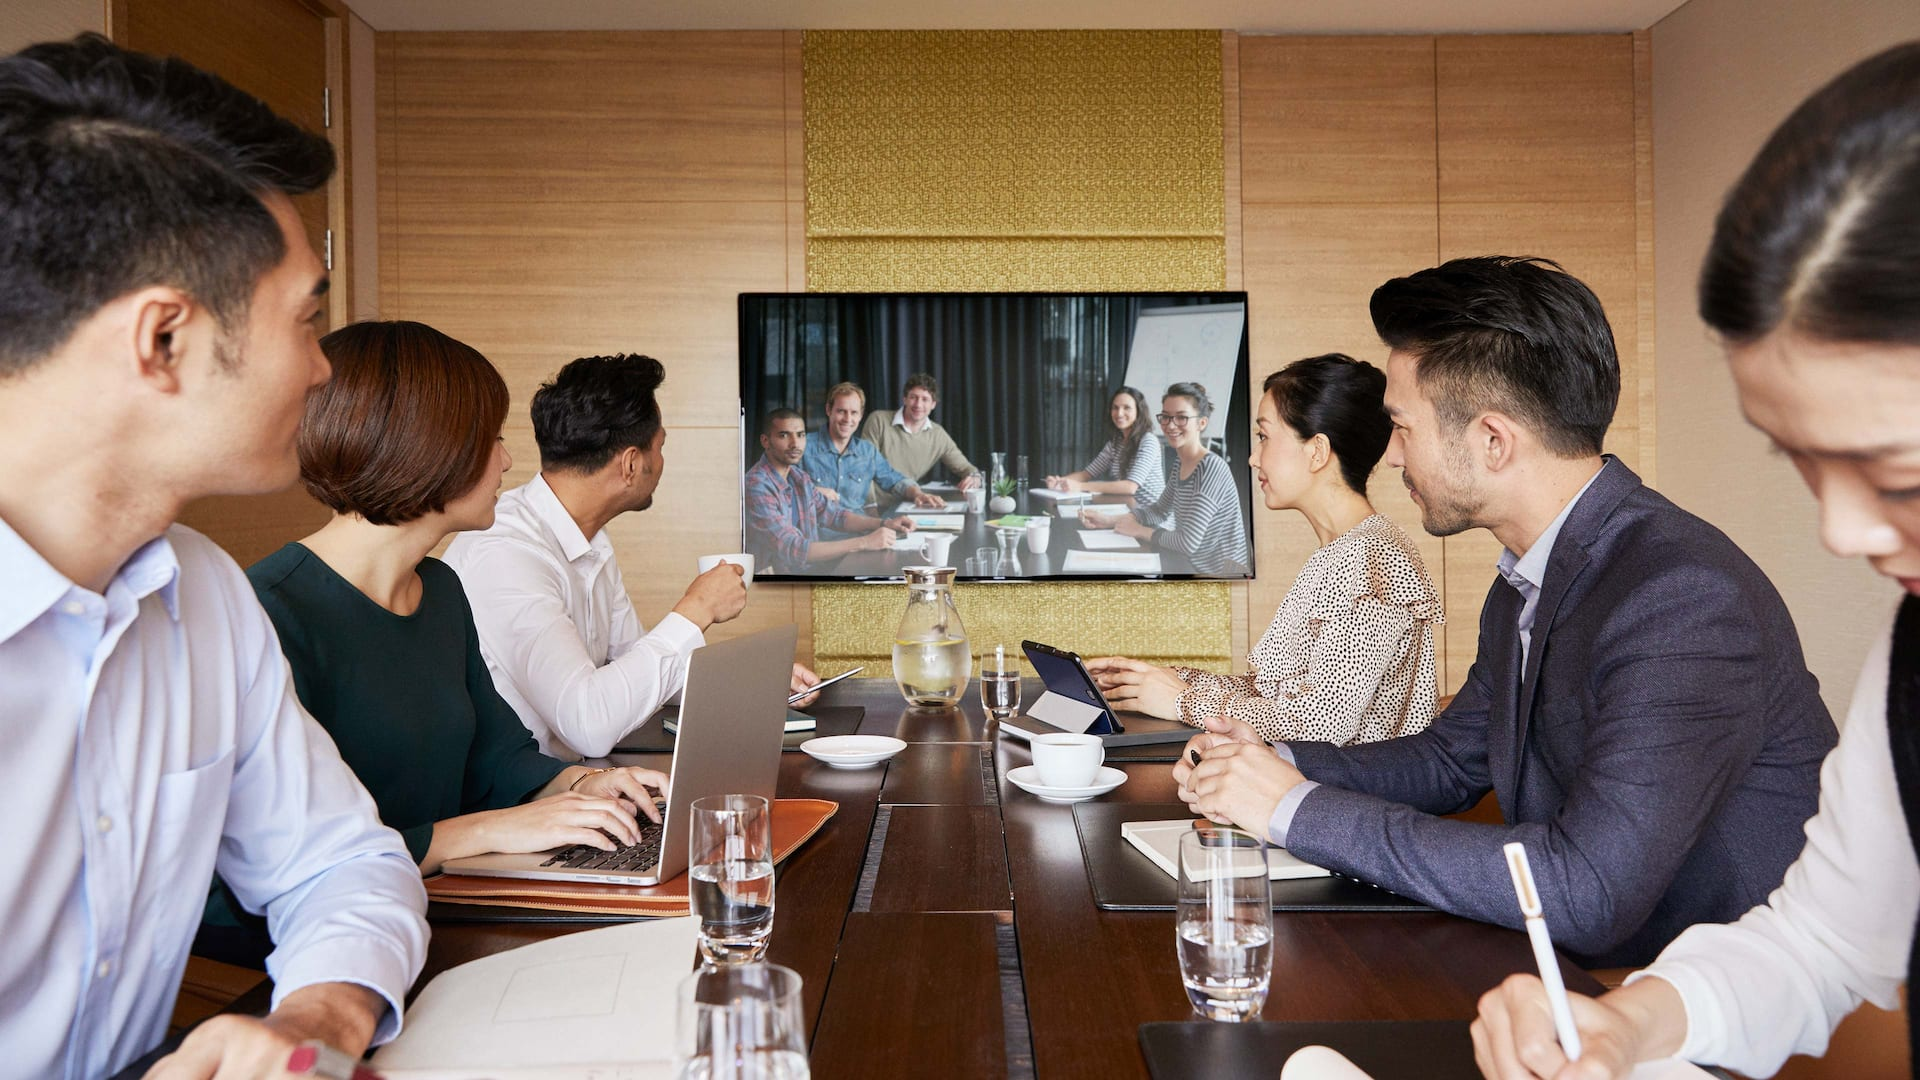 Conference Rooms for Business Meetings The Hyatt Regency Bali